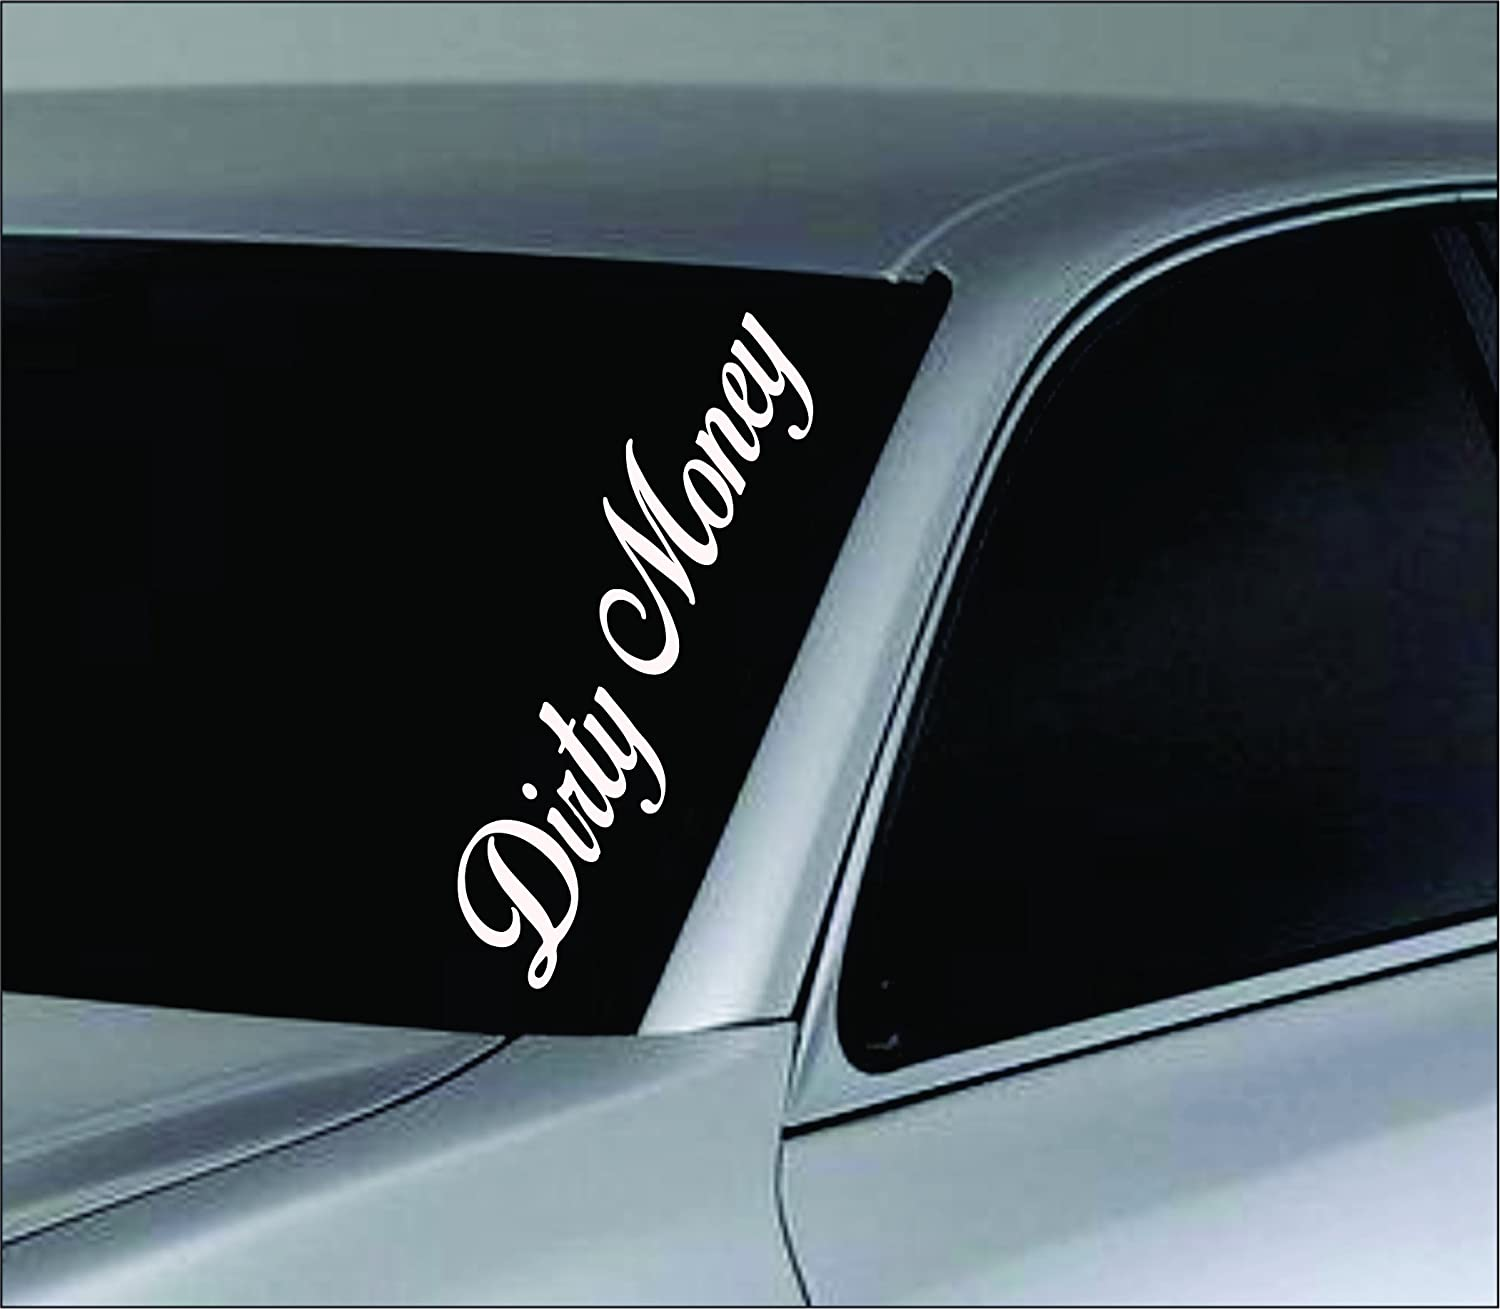 Amazoncom Dabbledown Decals Large Dirty Money Car Truck Window - Window decals amazon